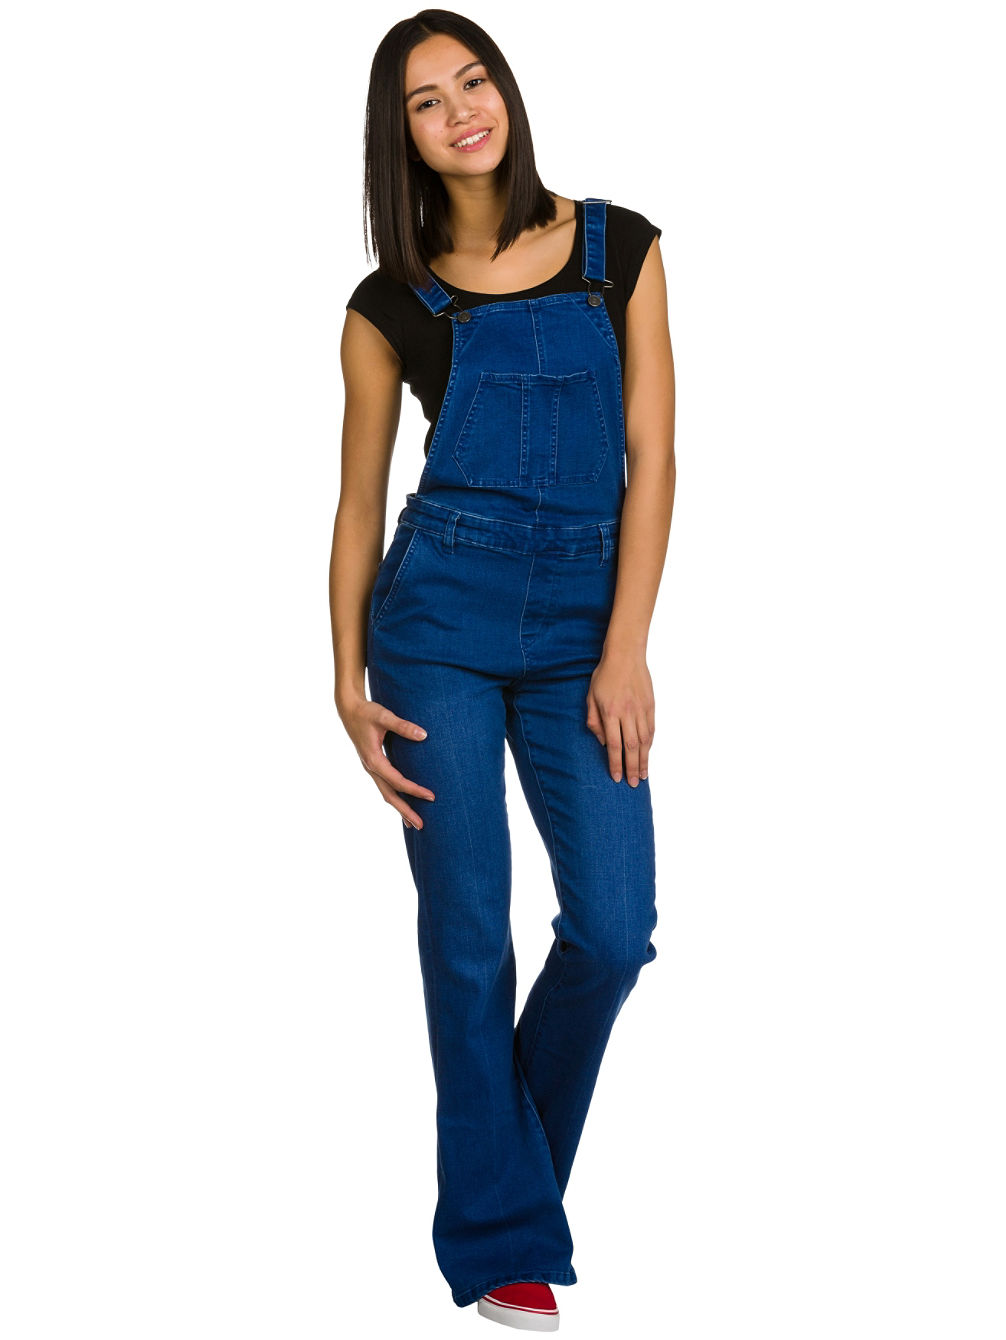 Bandjo Overall Jeans